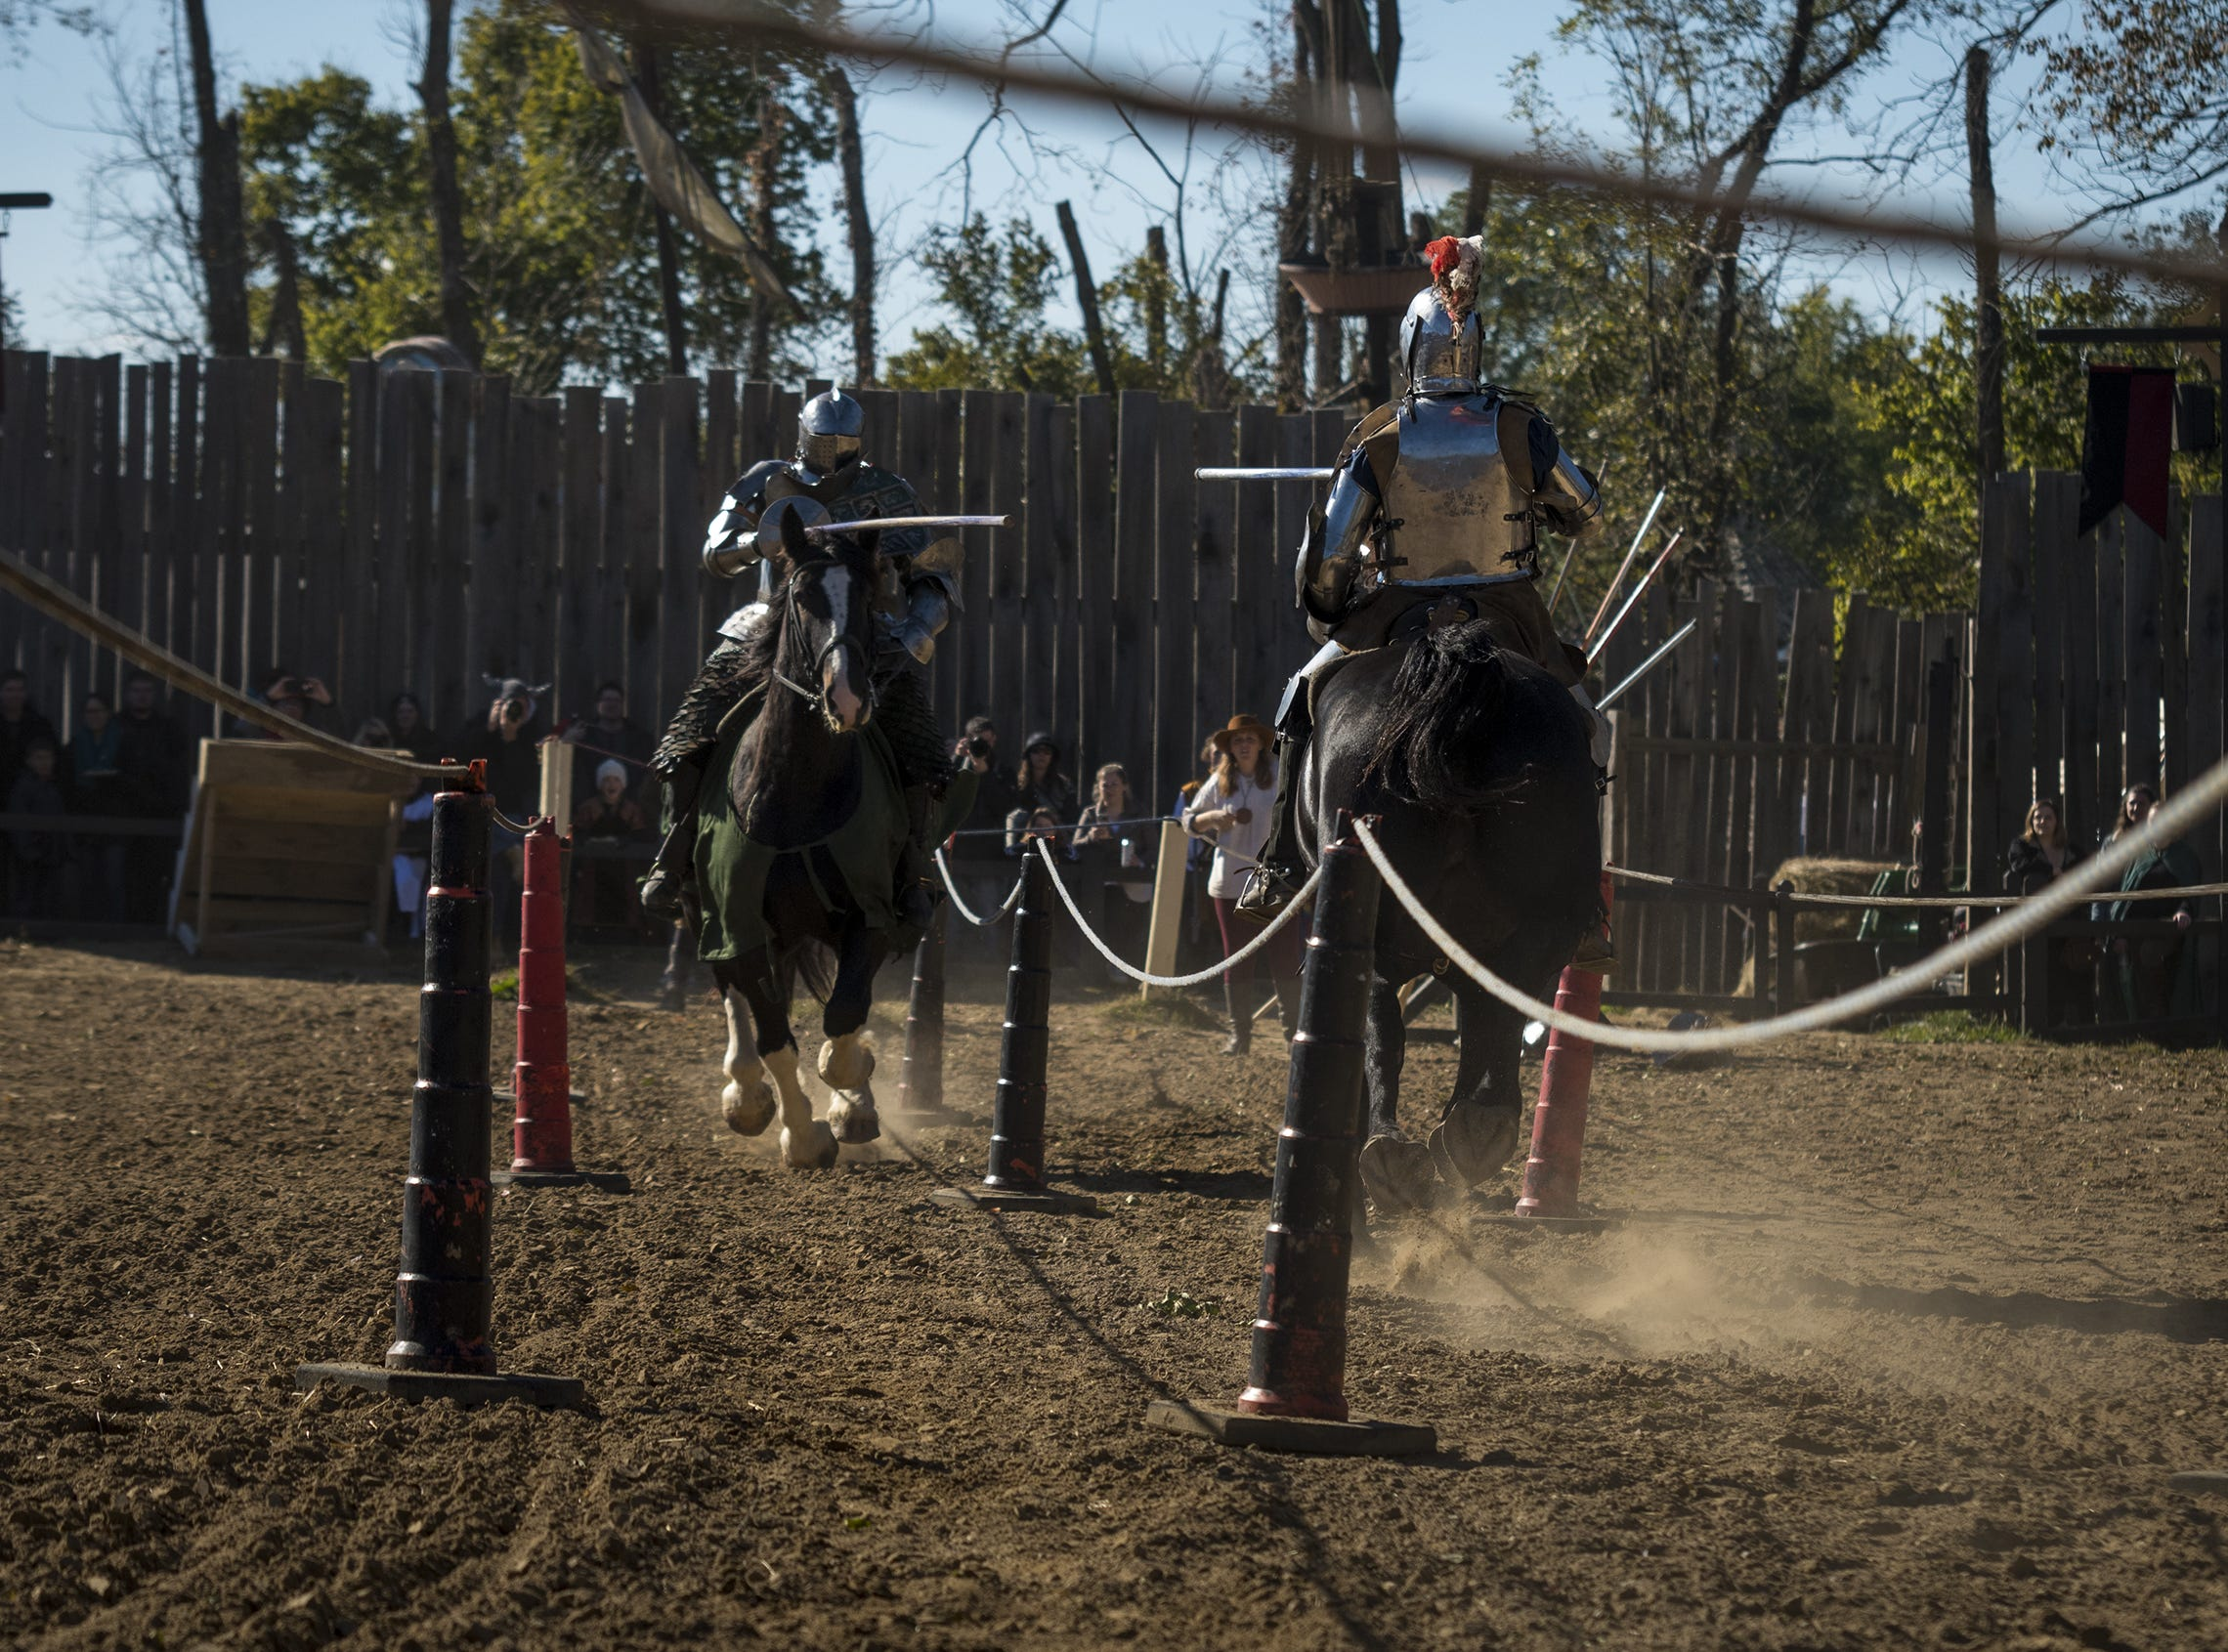 Sir Theodore and Sir Robert take aim during the live jousting show at the Ohio Renaissance Festival Sunday, October 21, 2018 in Waynesville, Ohio.